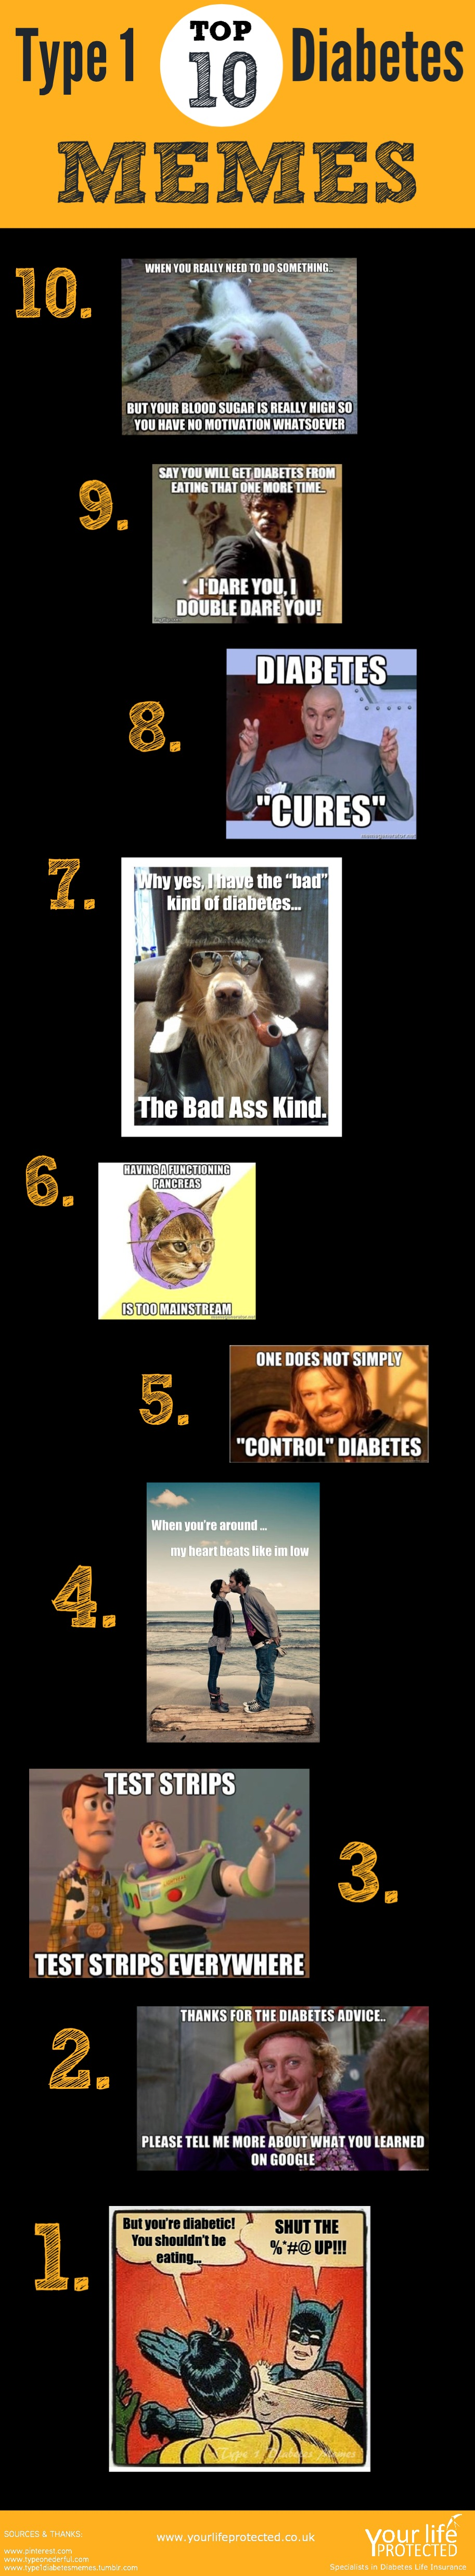 Type One Diabetes Memes Infographic